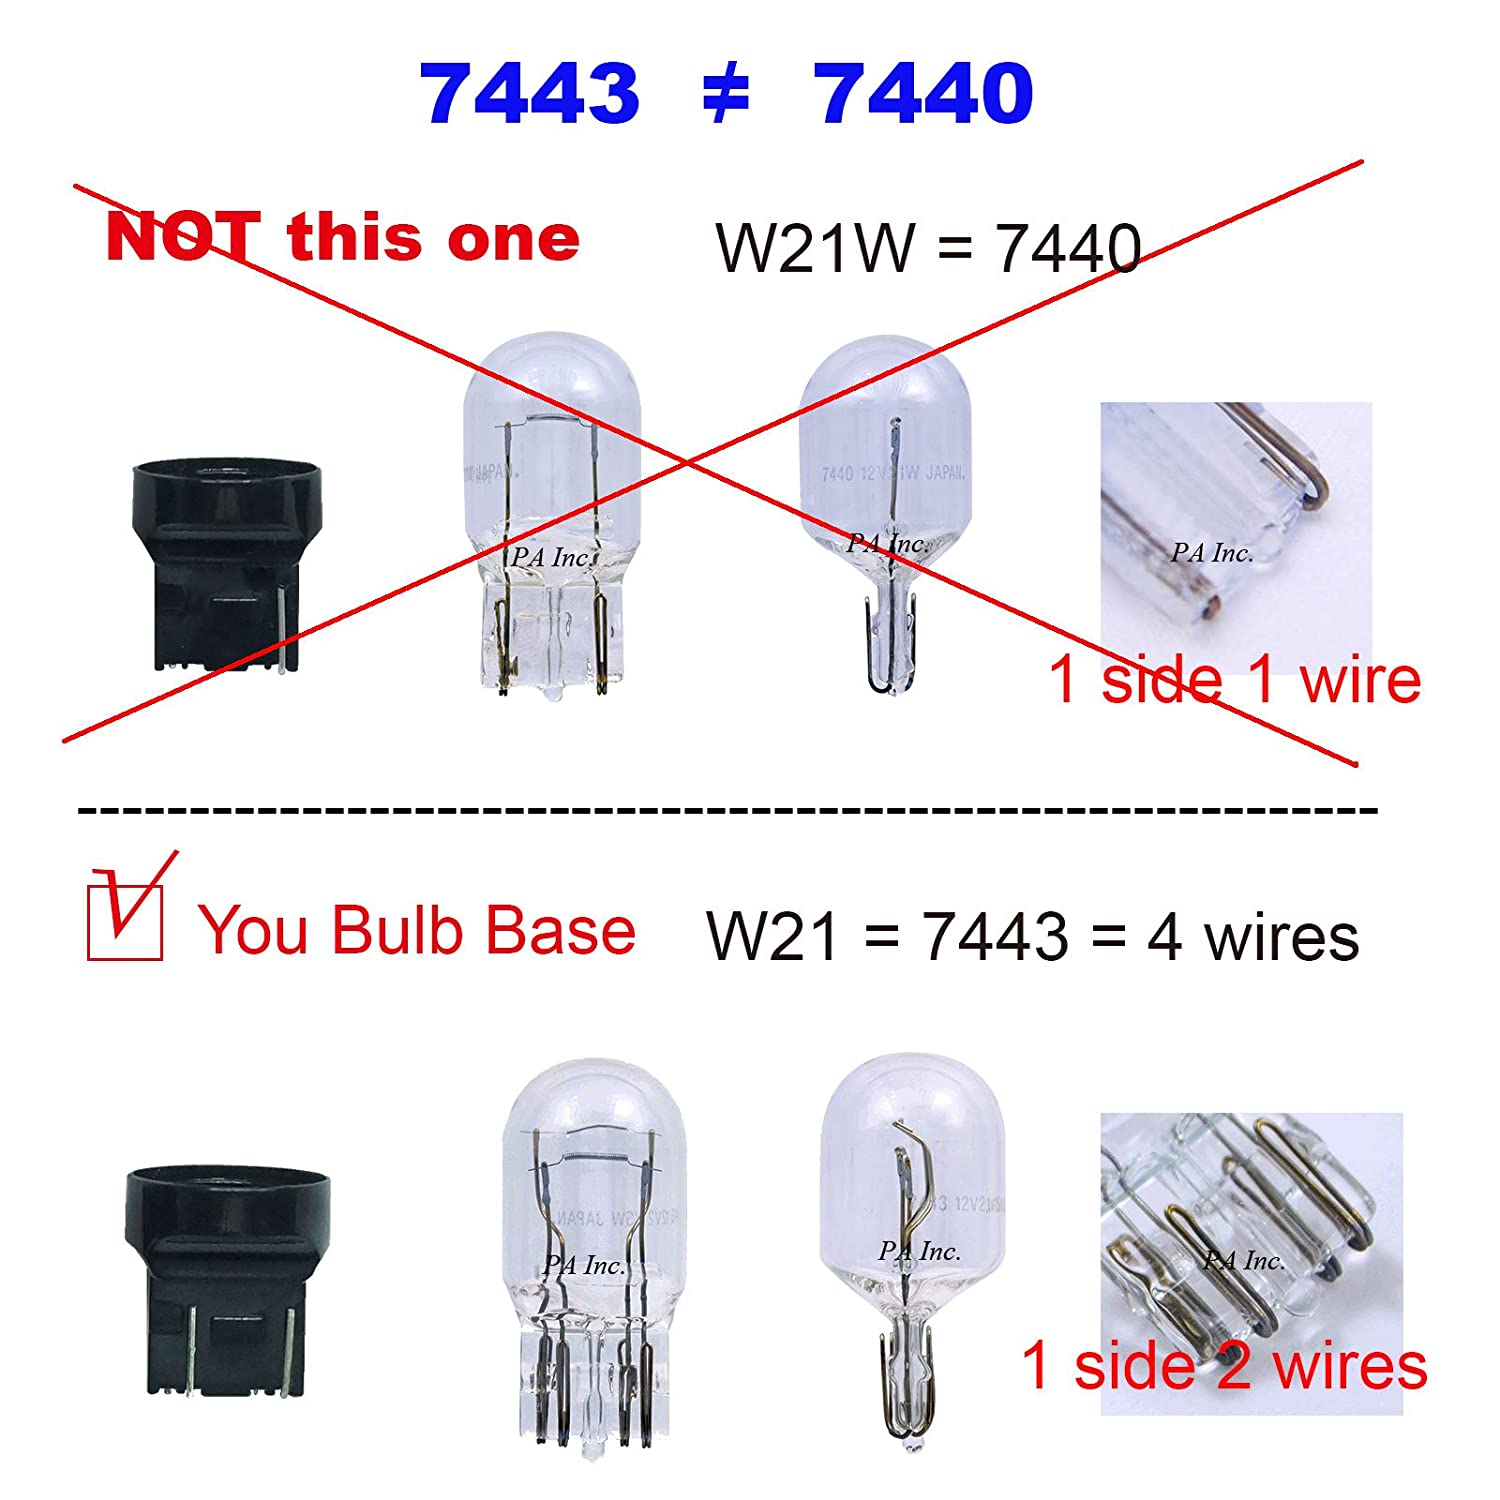 Pa 1 Set Led Lights Load Resistor Adapter Fix Hyper H11 Wiring Harness Flashing Rapid Blinking Canbus Error Code Eliminator Warning Canceller T20 7443 Double